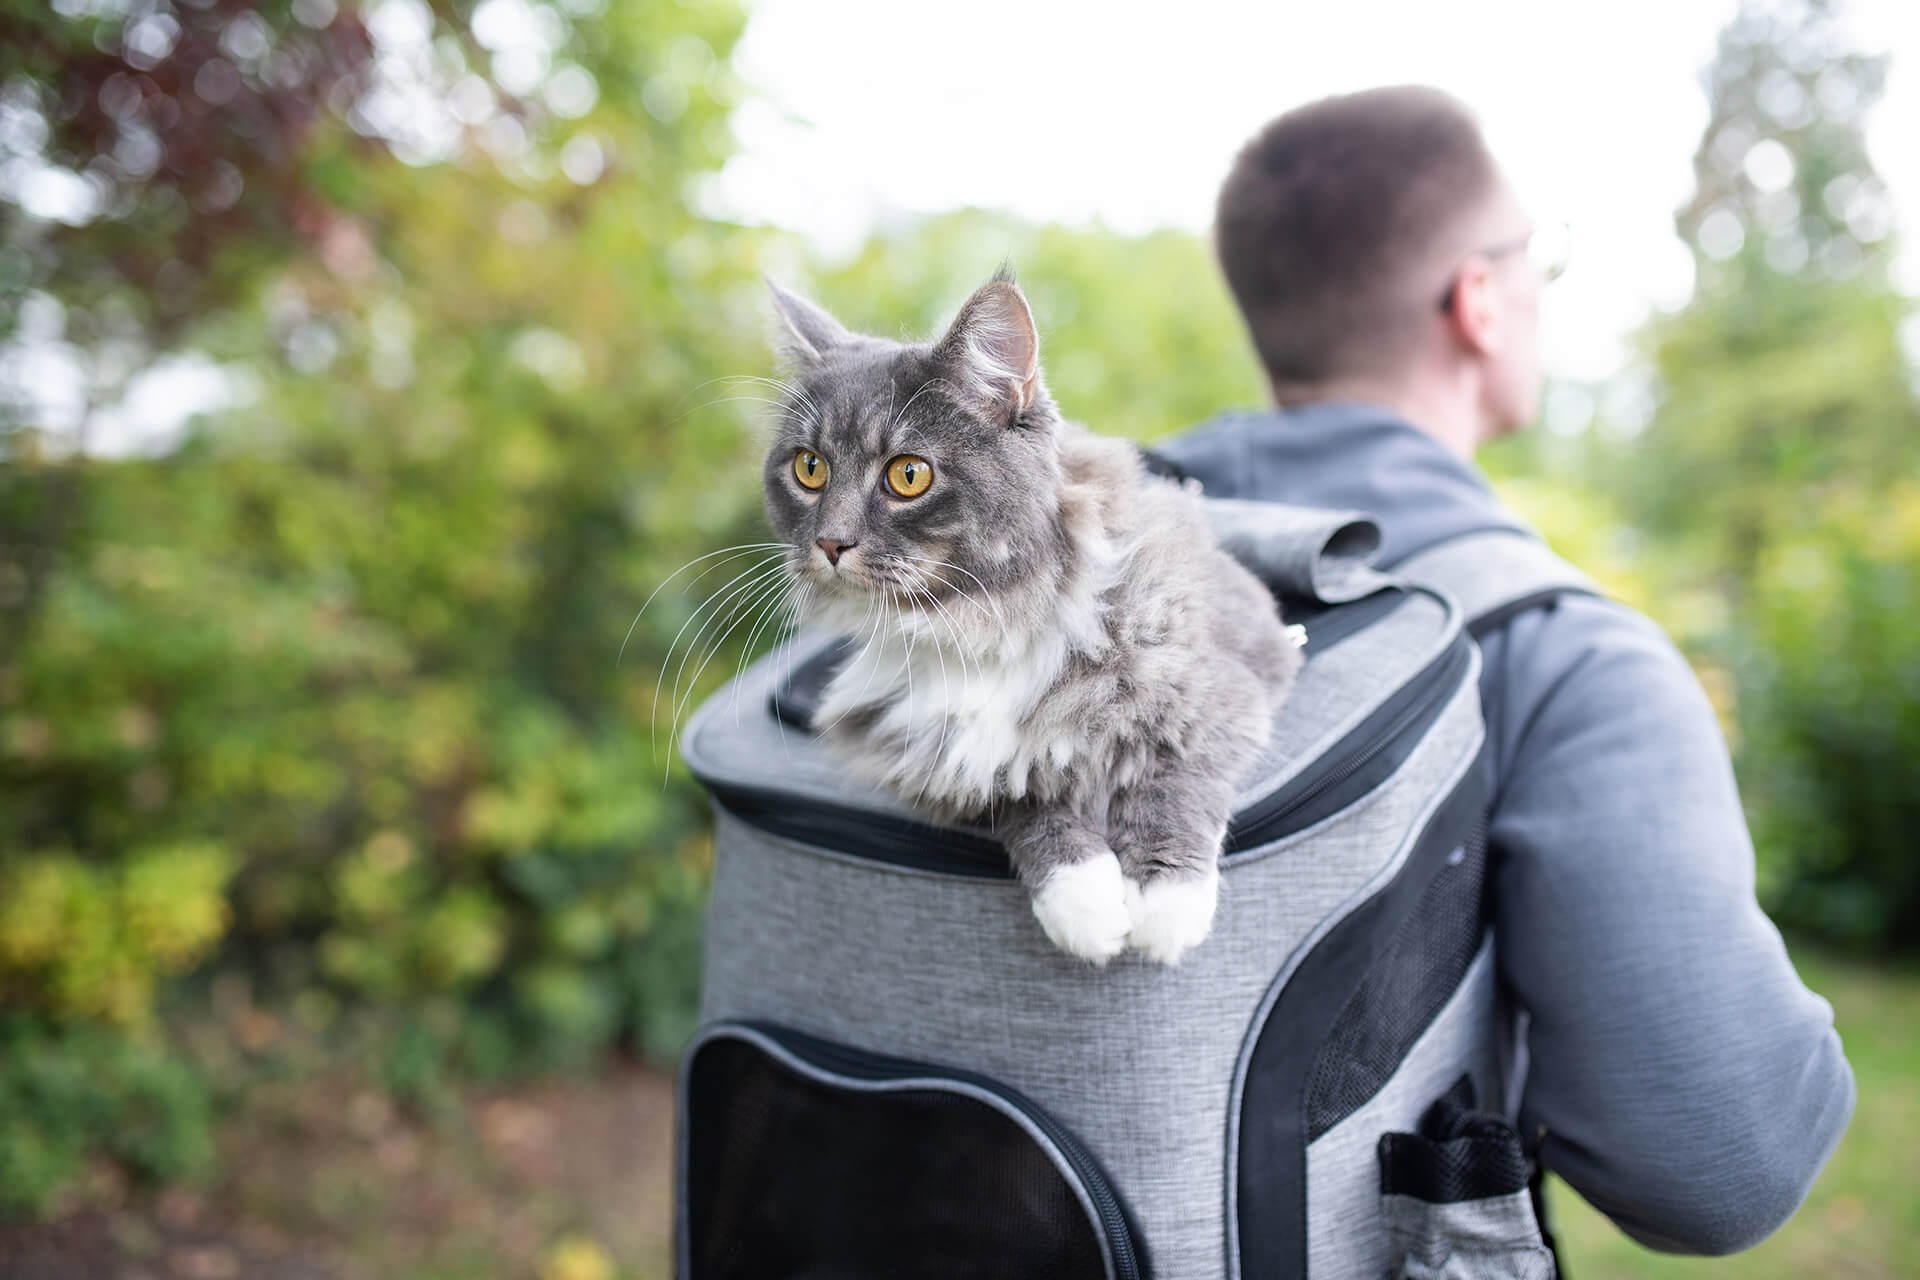 How to Hike with a Cat: Top 7 Tips for Hiking with Your Cat Safely